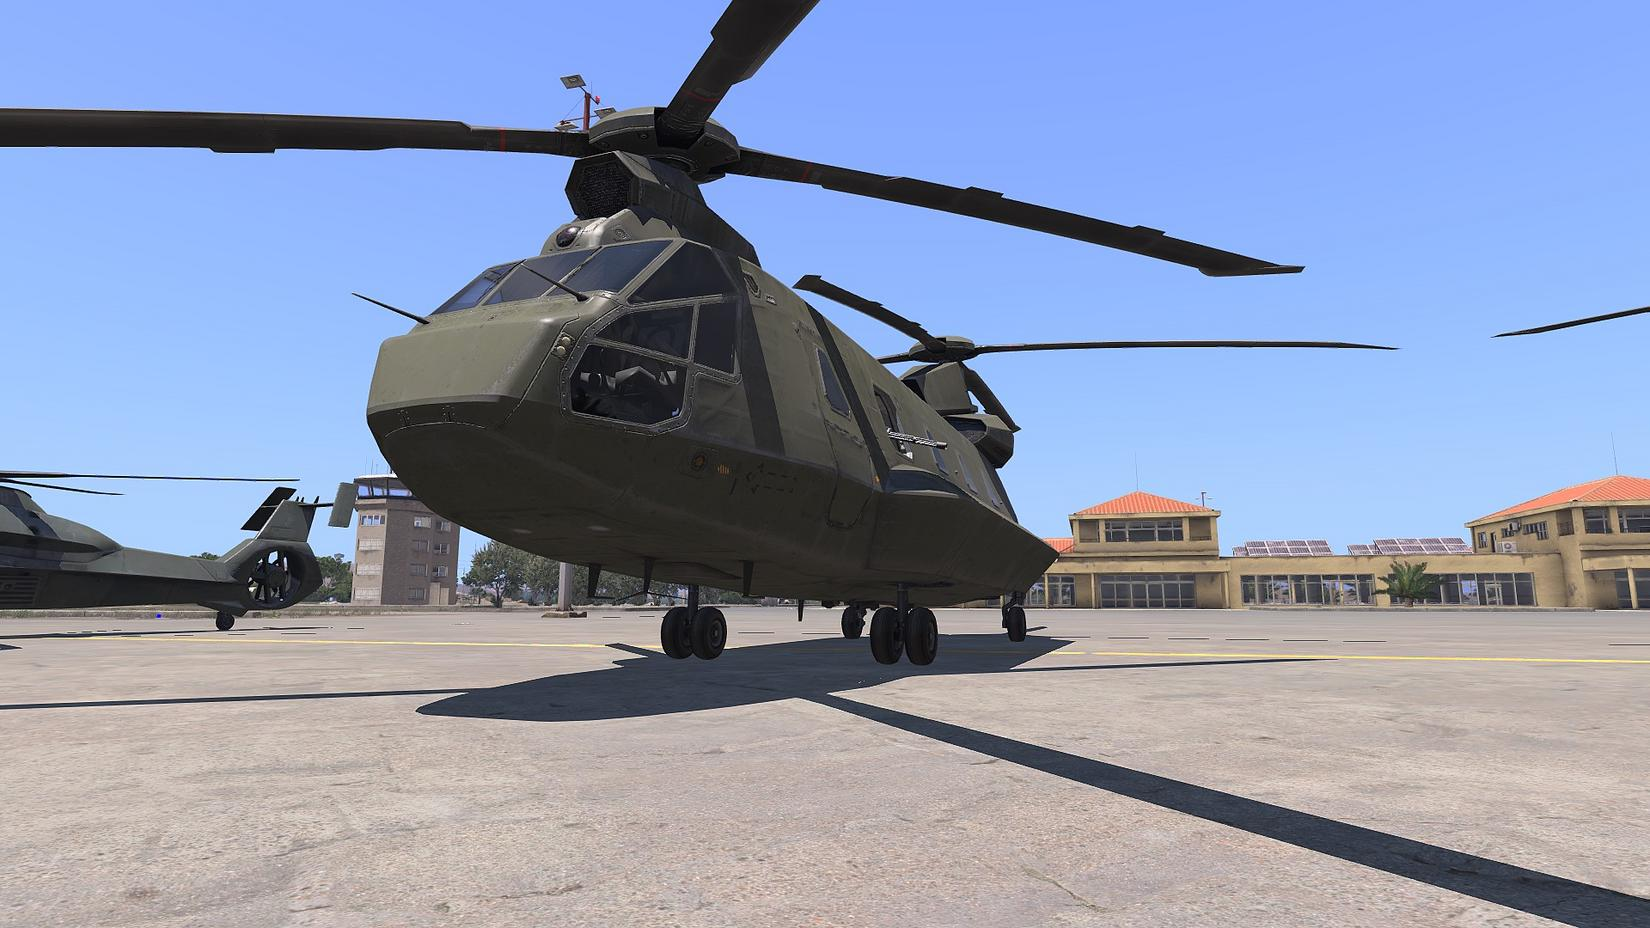 Arma 3: New Helis! - SimHQ Forums